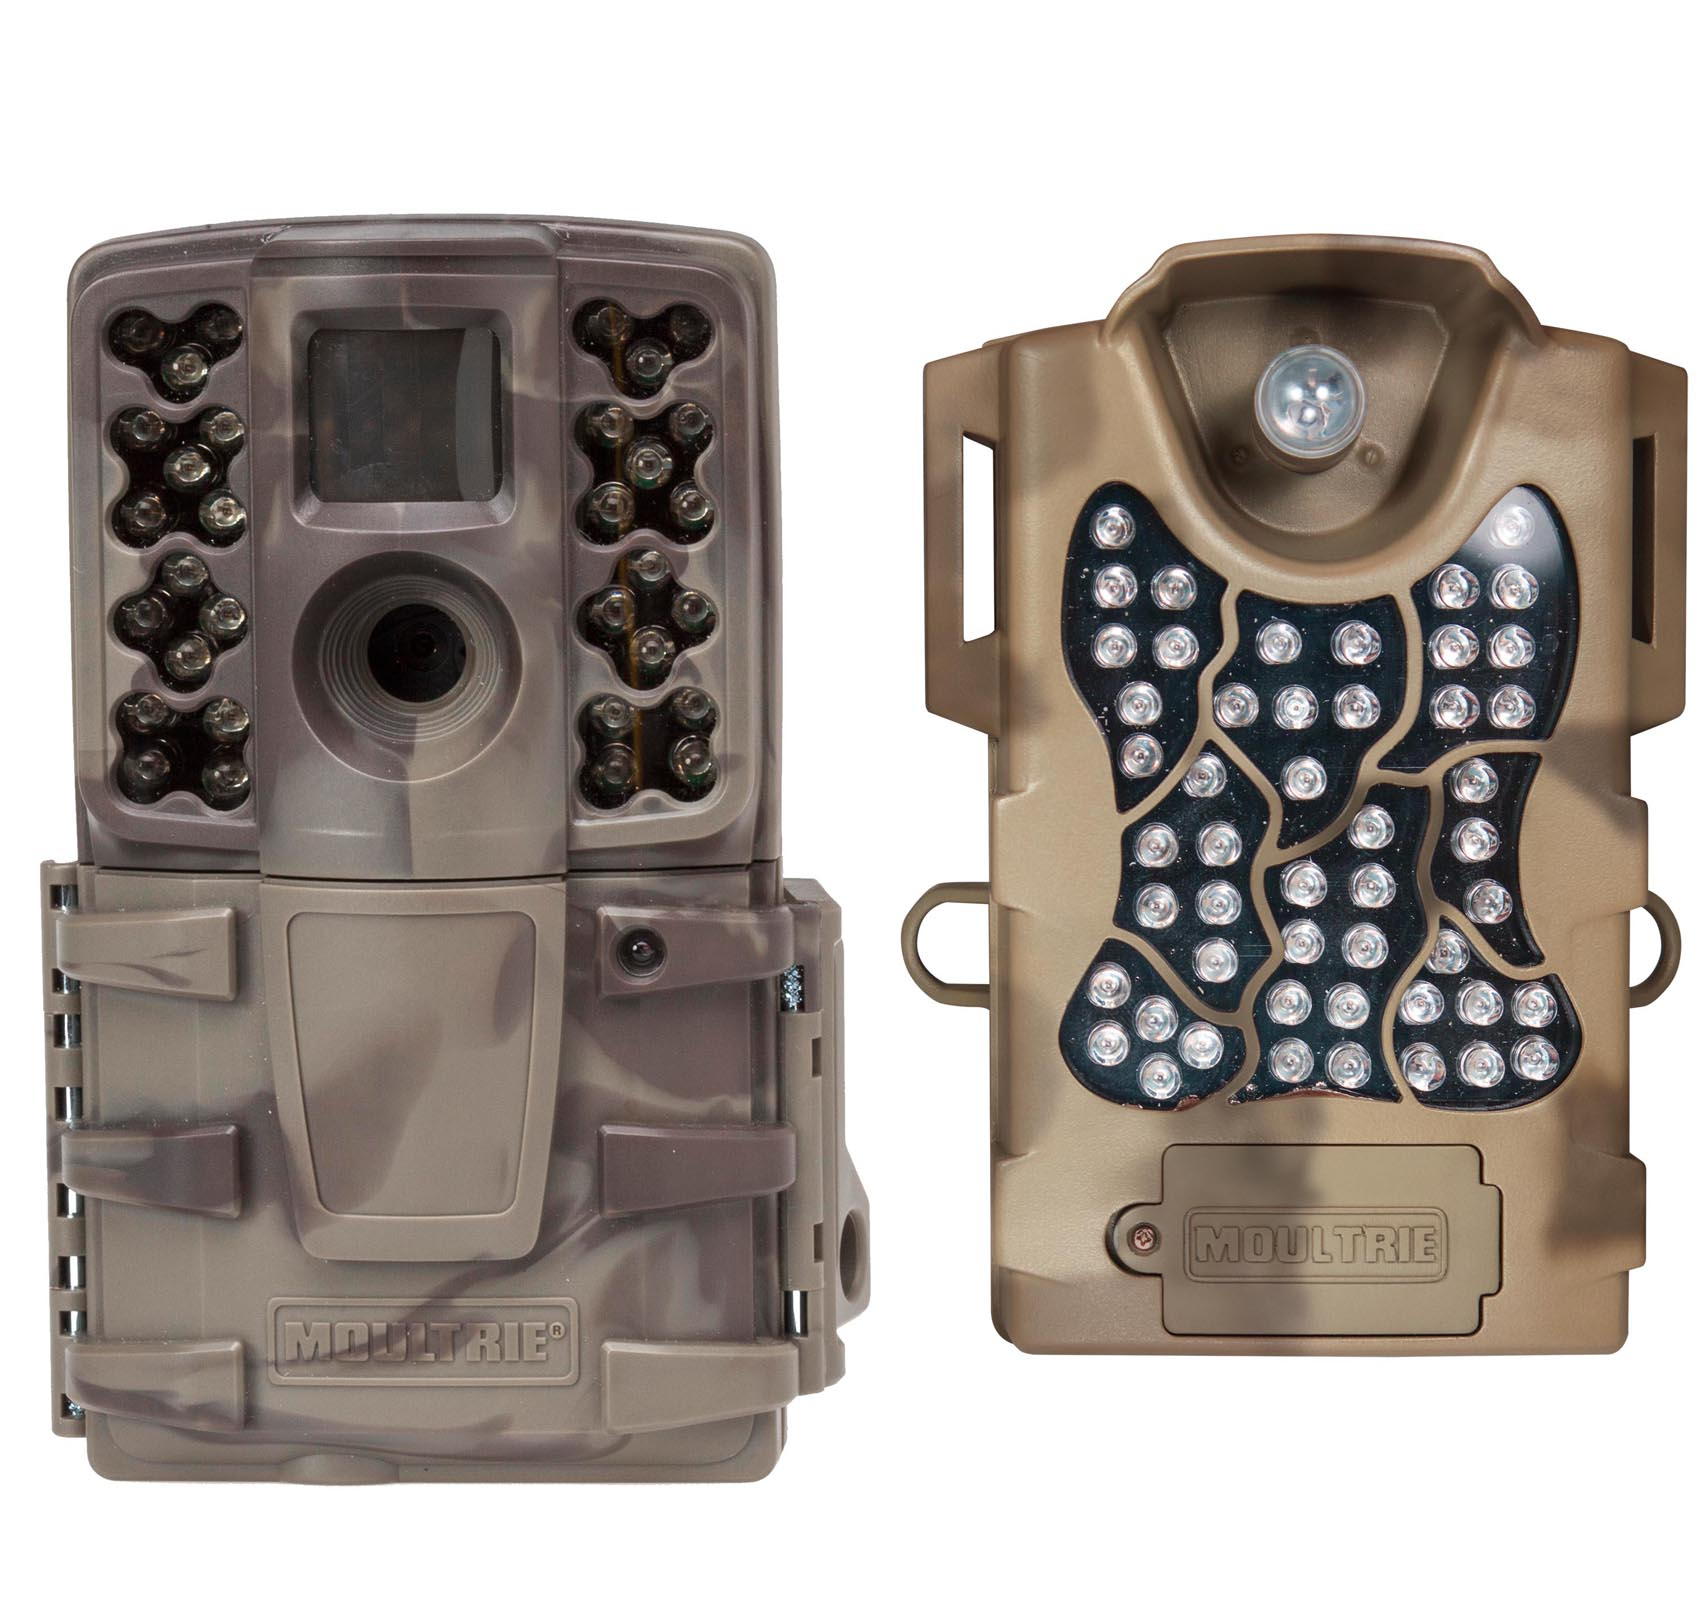 Moultrie No Glow Invisible 12 MP Mini A20i IR Trail Game Camera + Flash Extender by Moultrie